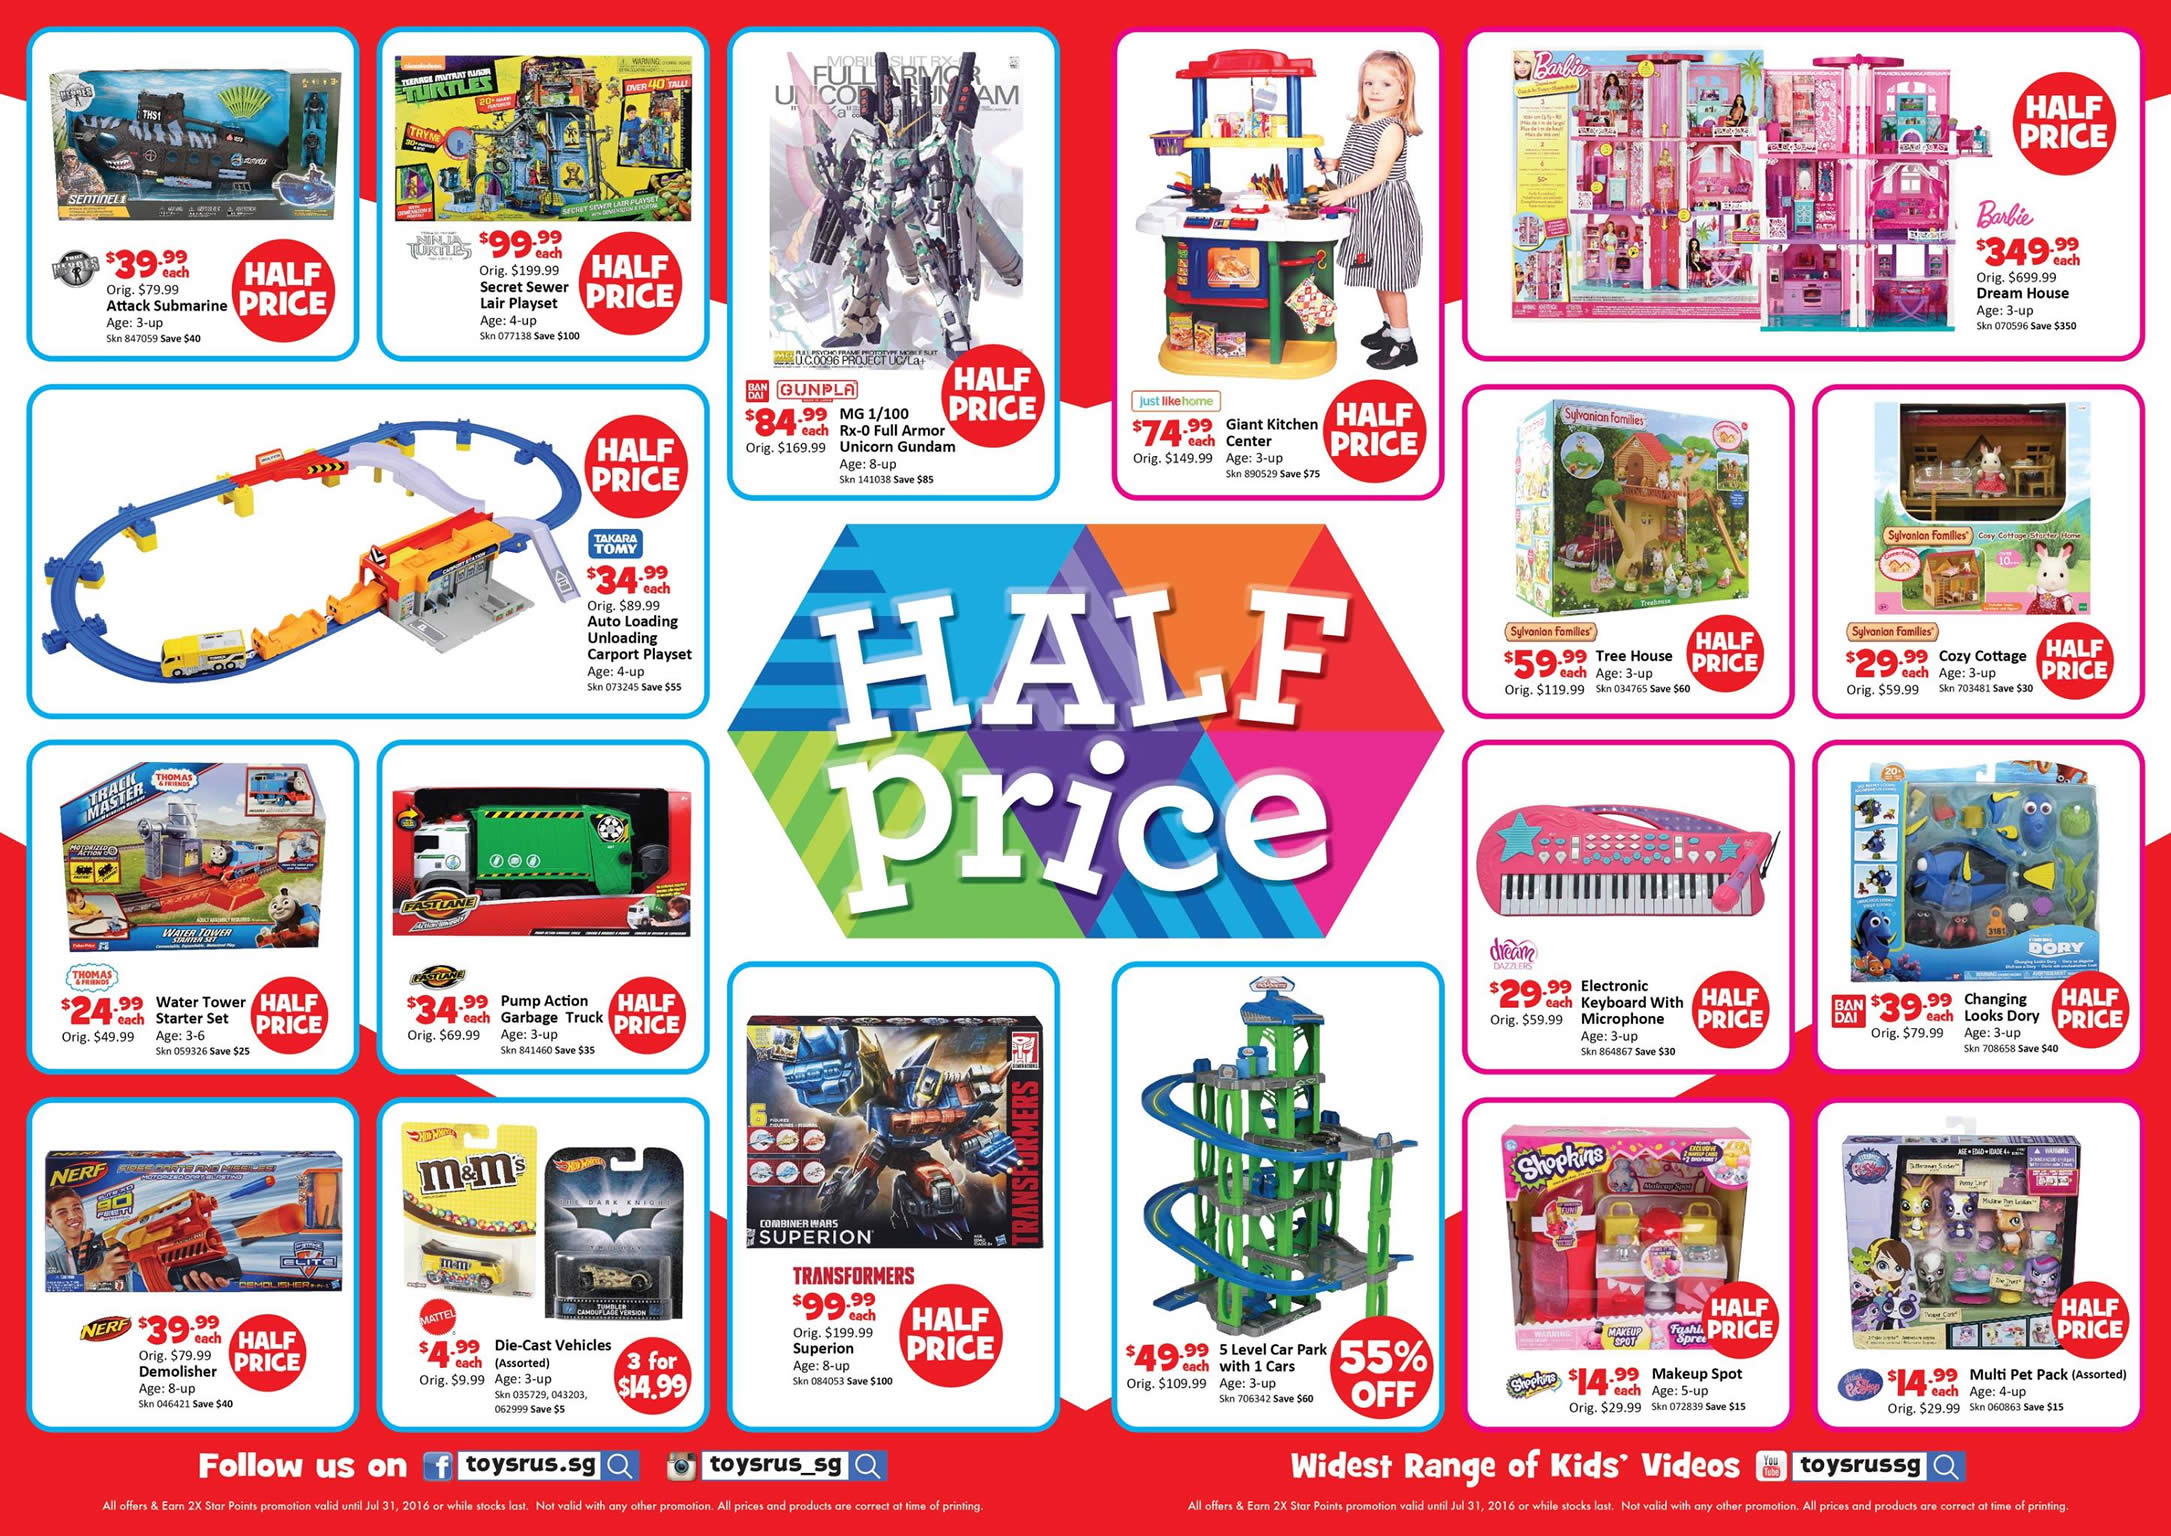 """Toys R Us Prices : Half price offers toys """"r us over"""